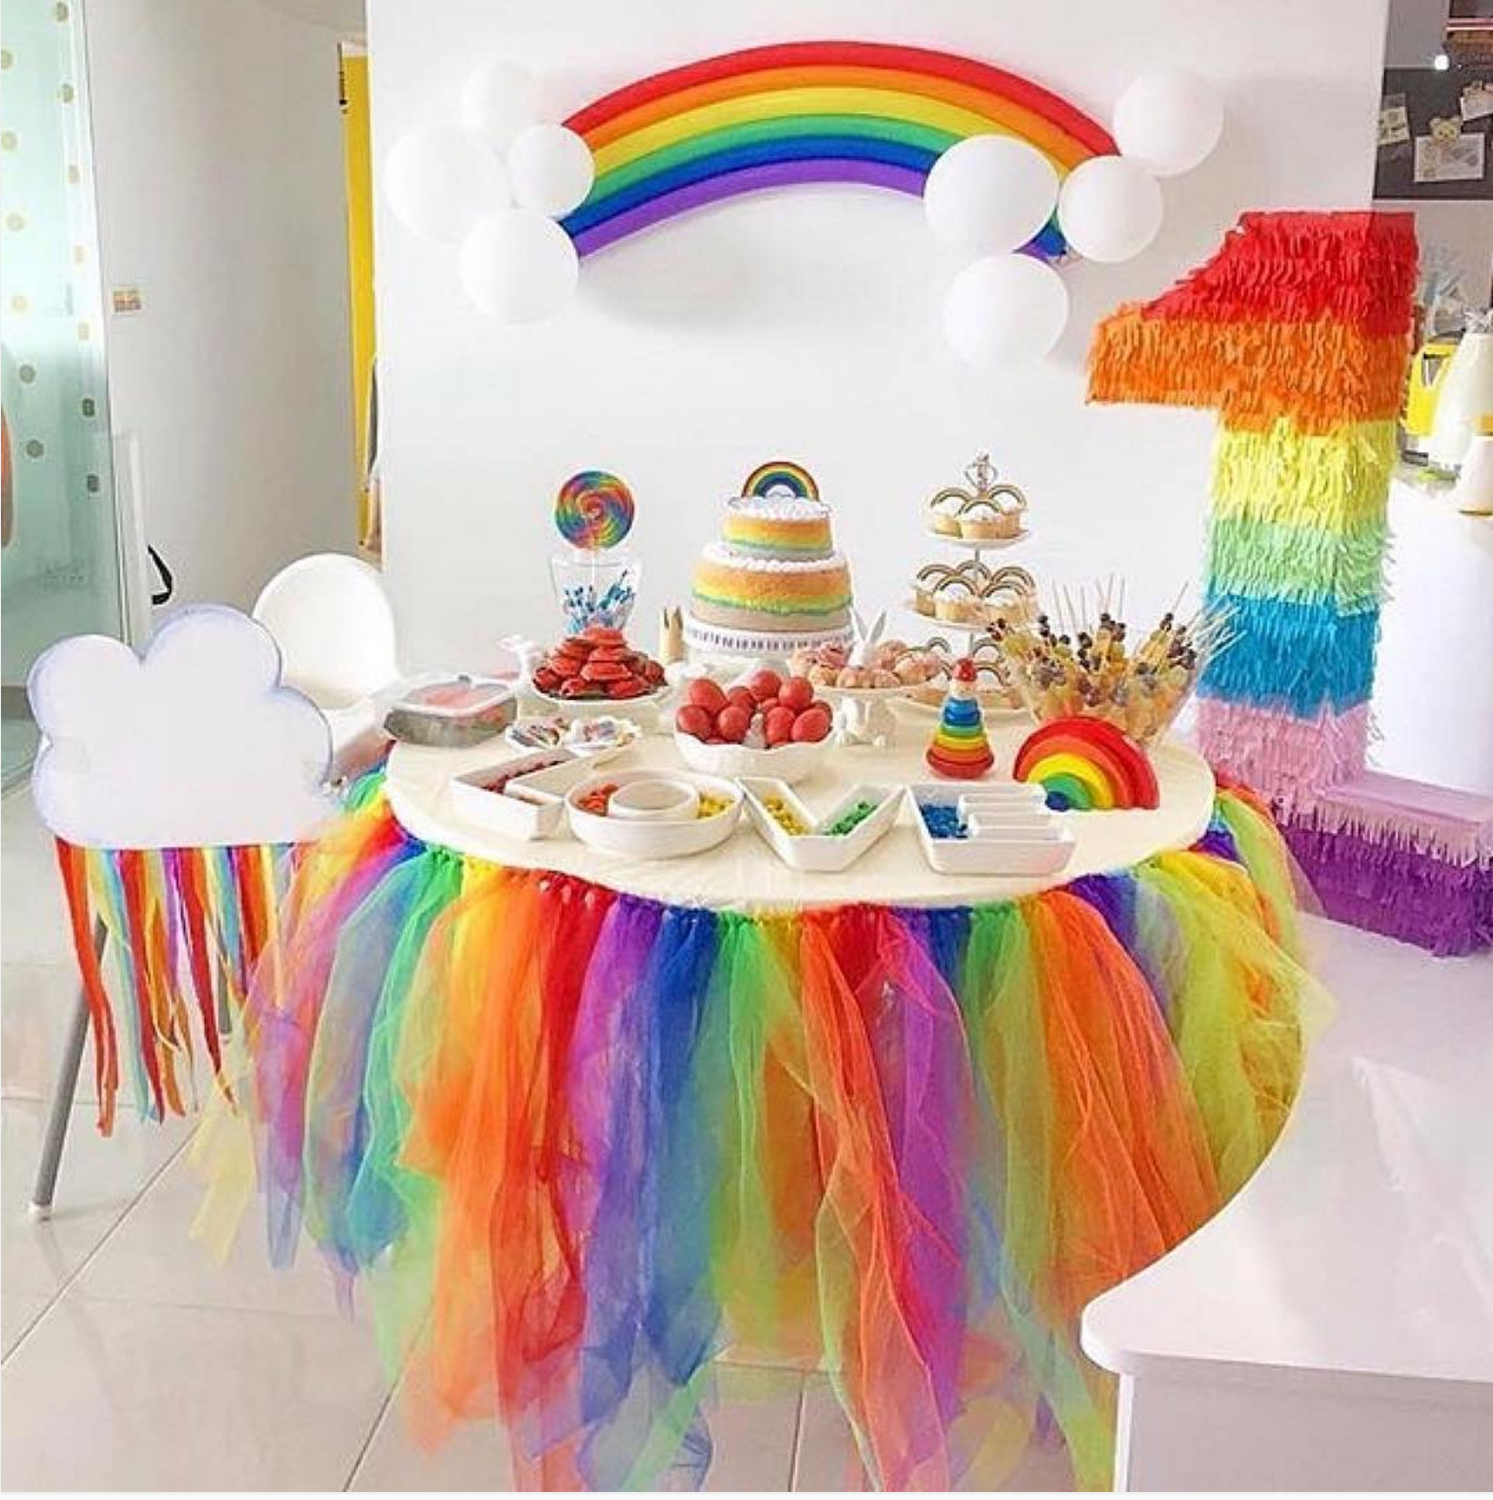 Ideas para fiestas tem ticas de arcoiris - Ideas decoracion fiesta ...